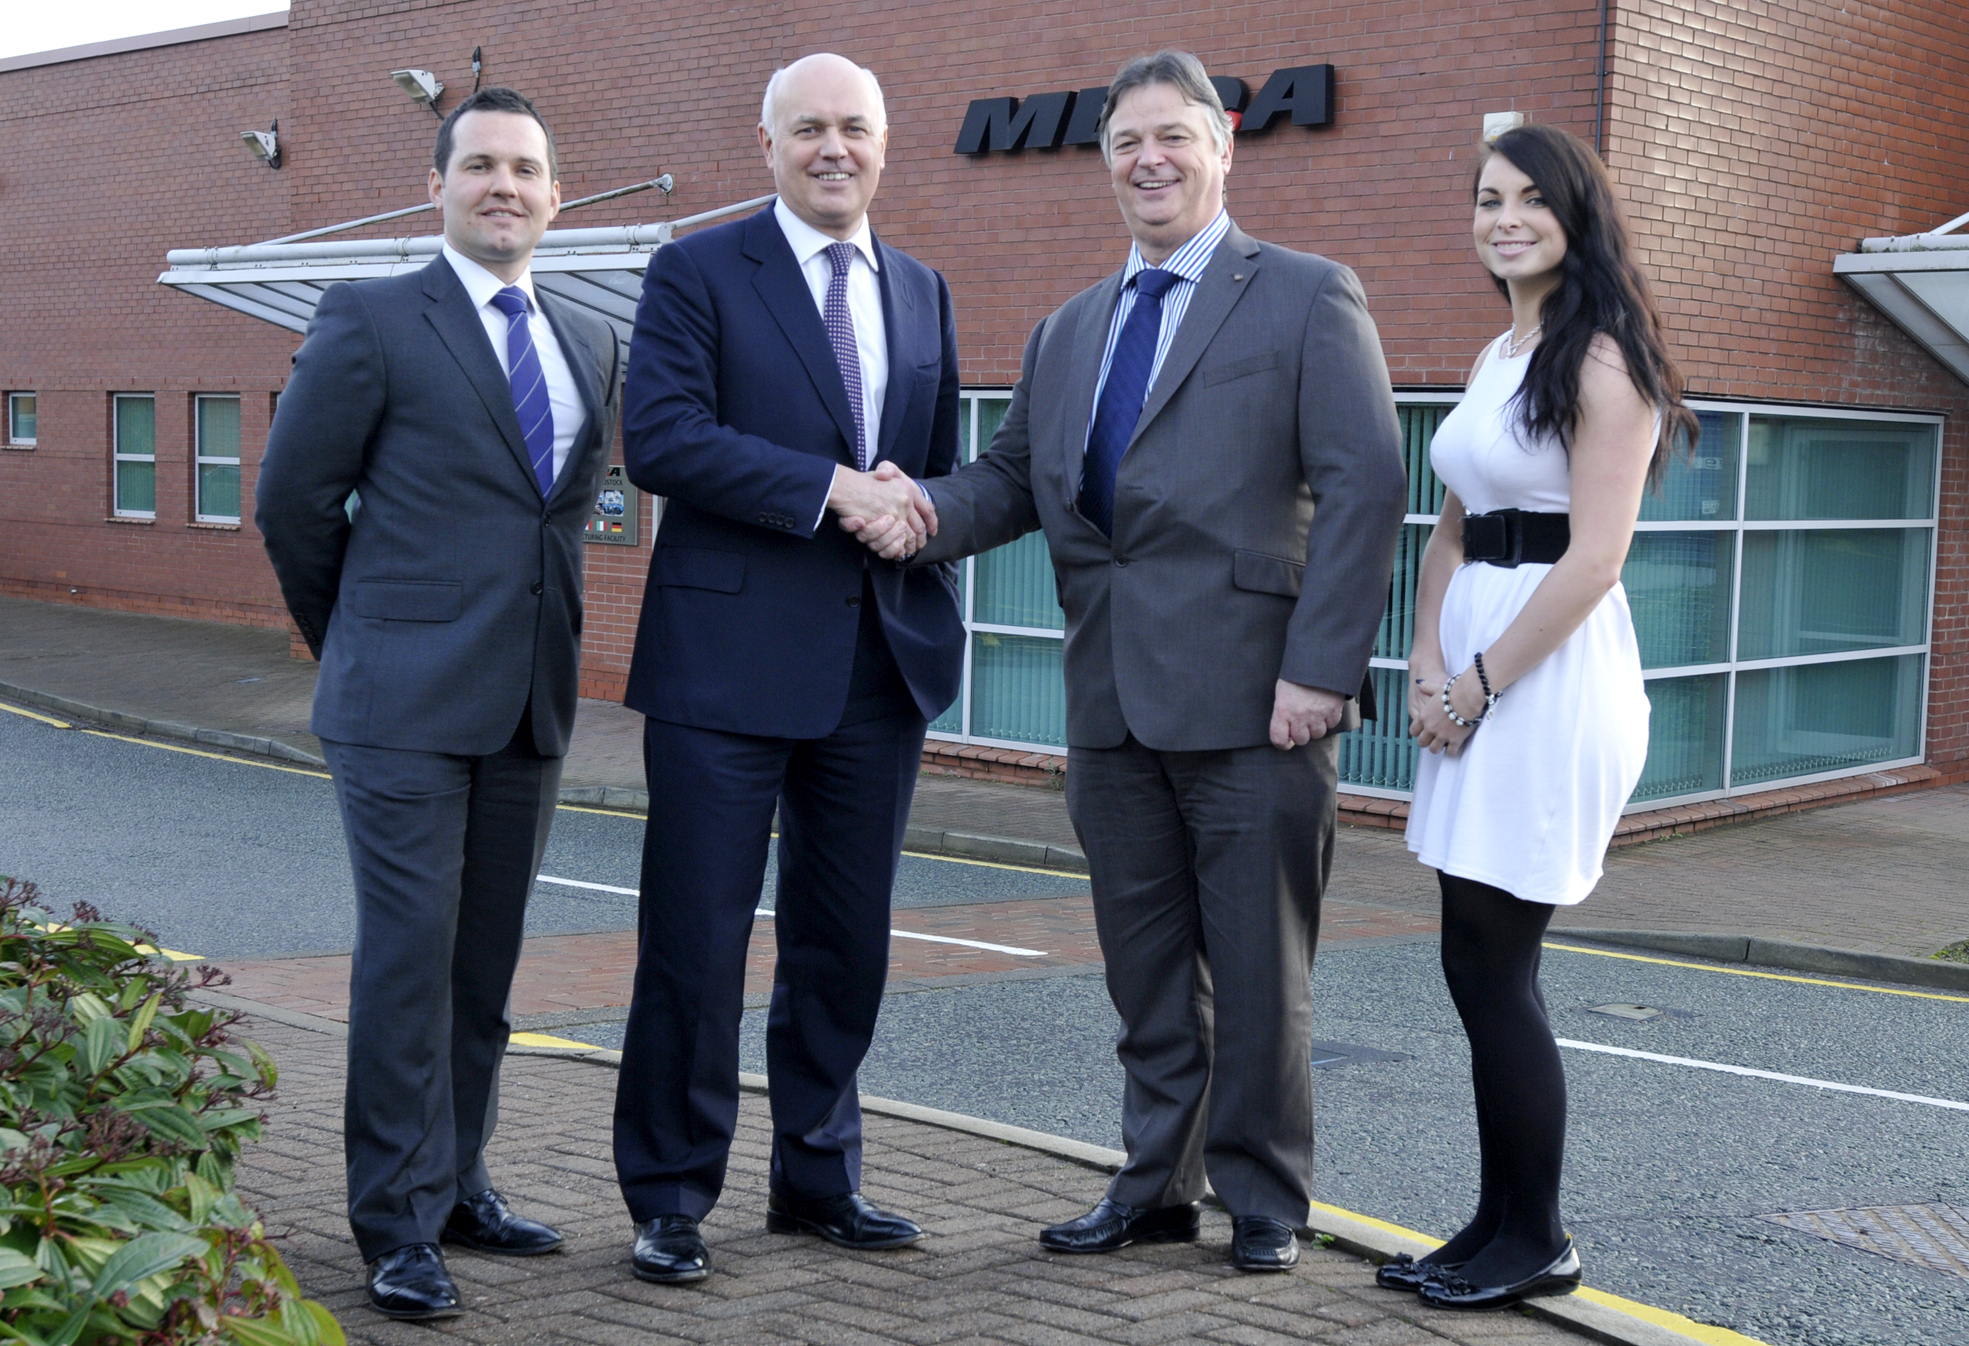 From left, Chris Green, Iain Duncan Smith, Bernard Waldron and apprentice Samantha Ball at MBDA in Lostock